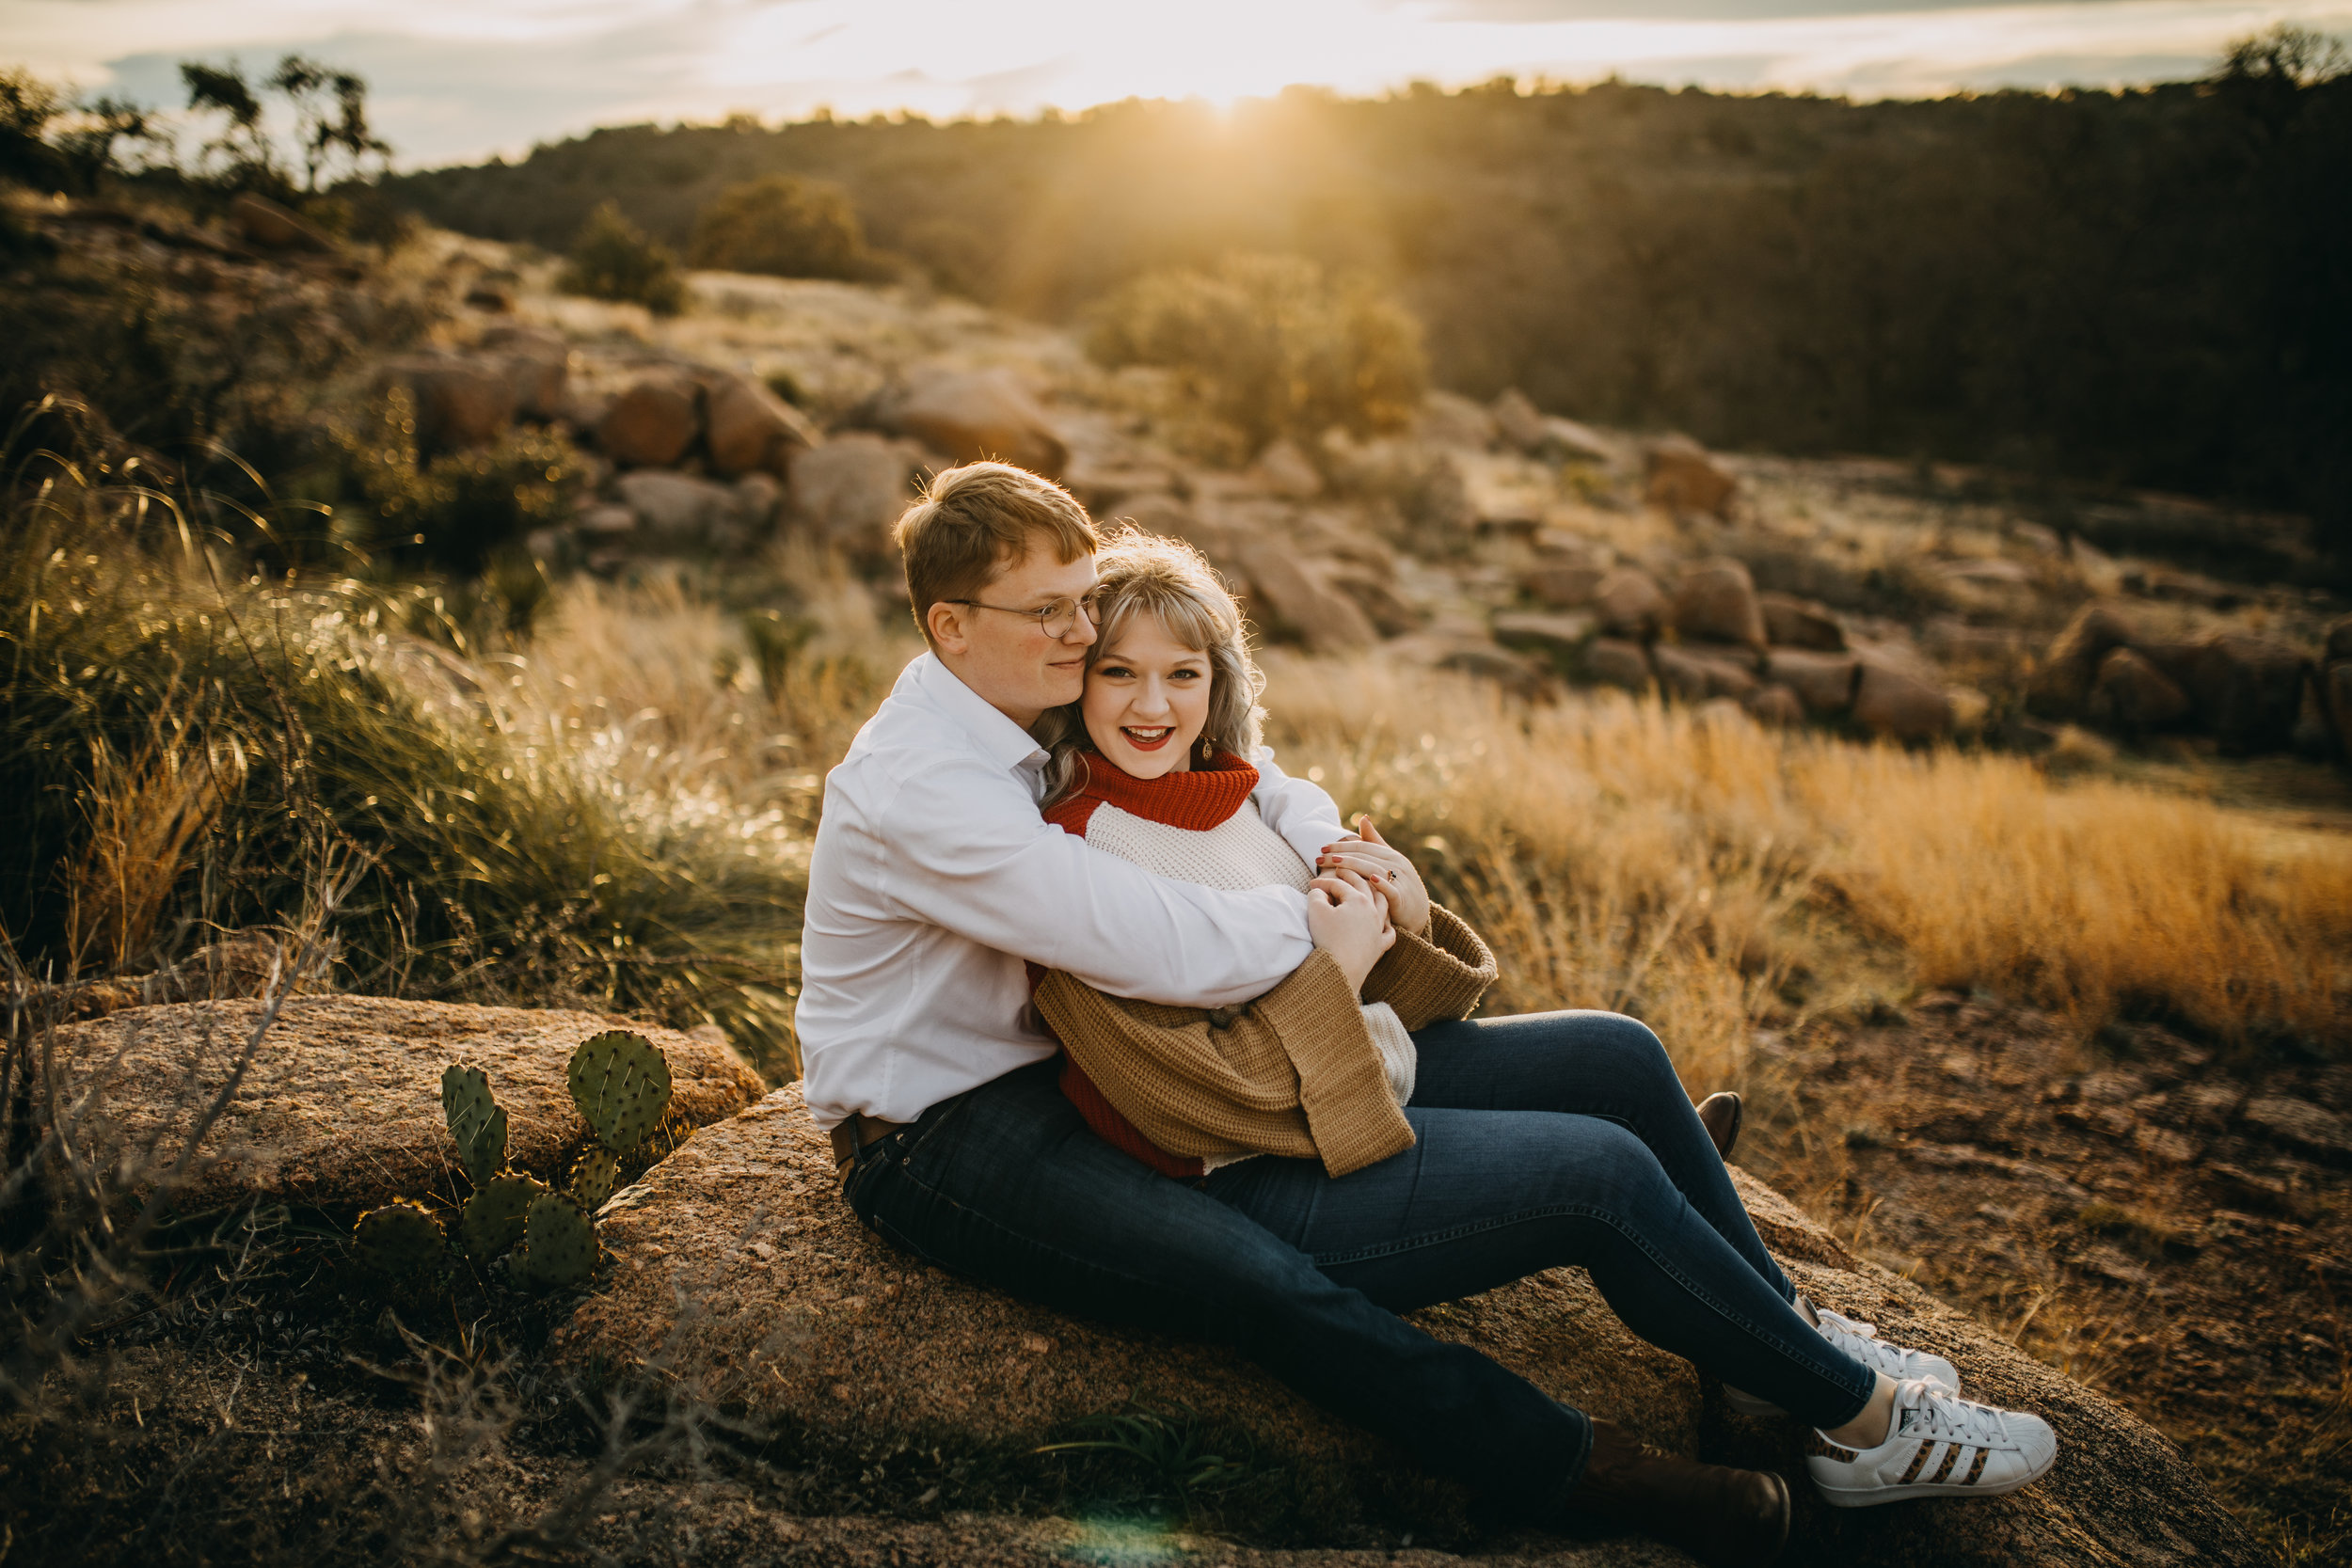 Engagement pictures can be unreasonably stressful! From deciding what to wear to being behind a professional camera for the first time, we understand why! Here are five tips on how to have the best engagement session ever!